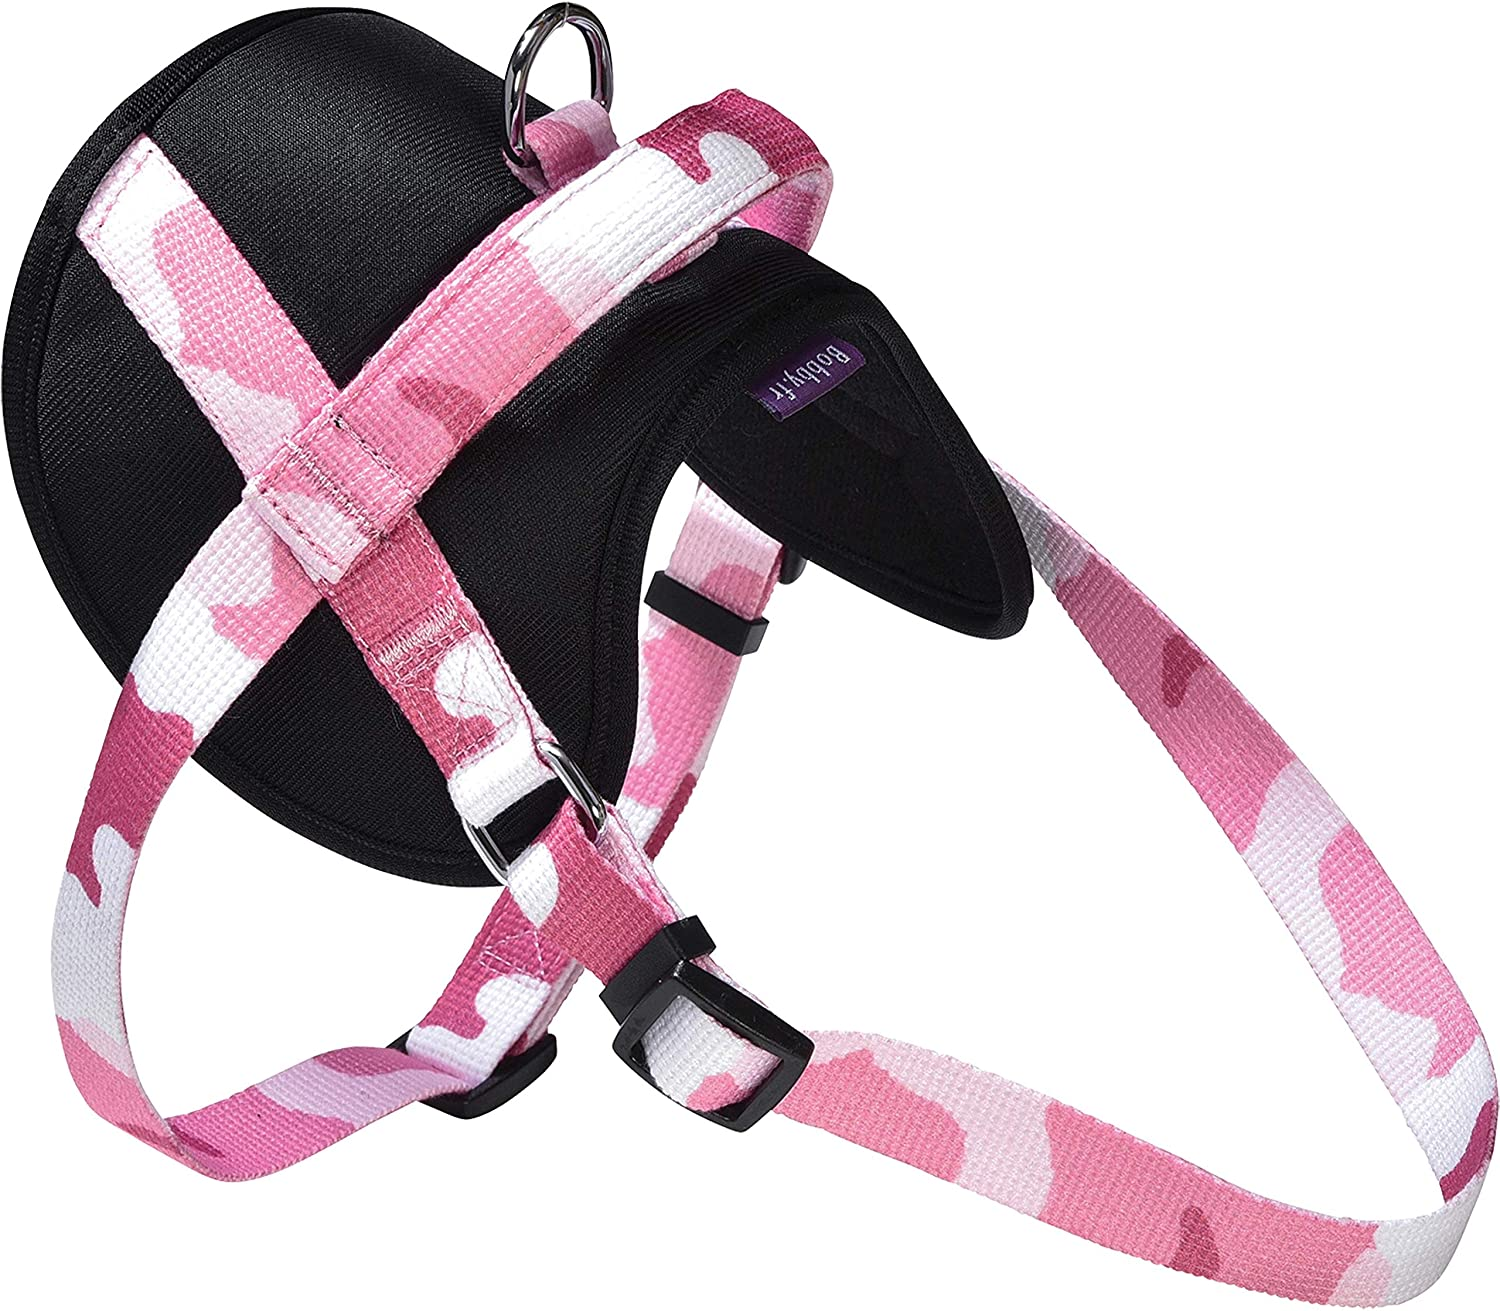 Bobby Harnais Easy pour Chien Camouflage Rose Taille S